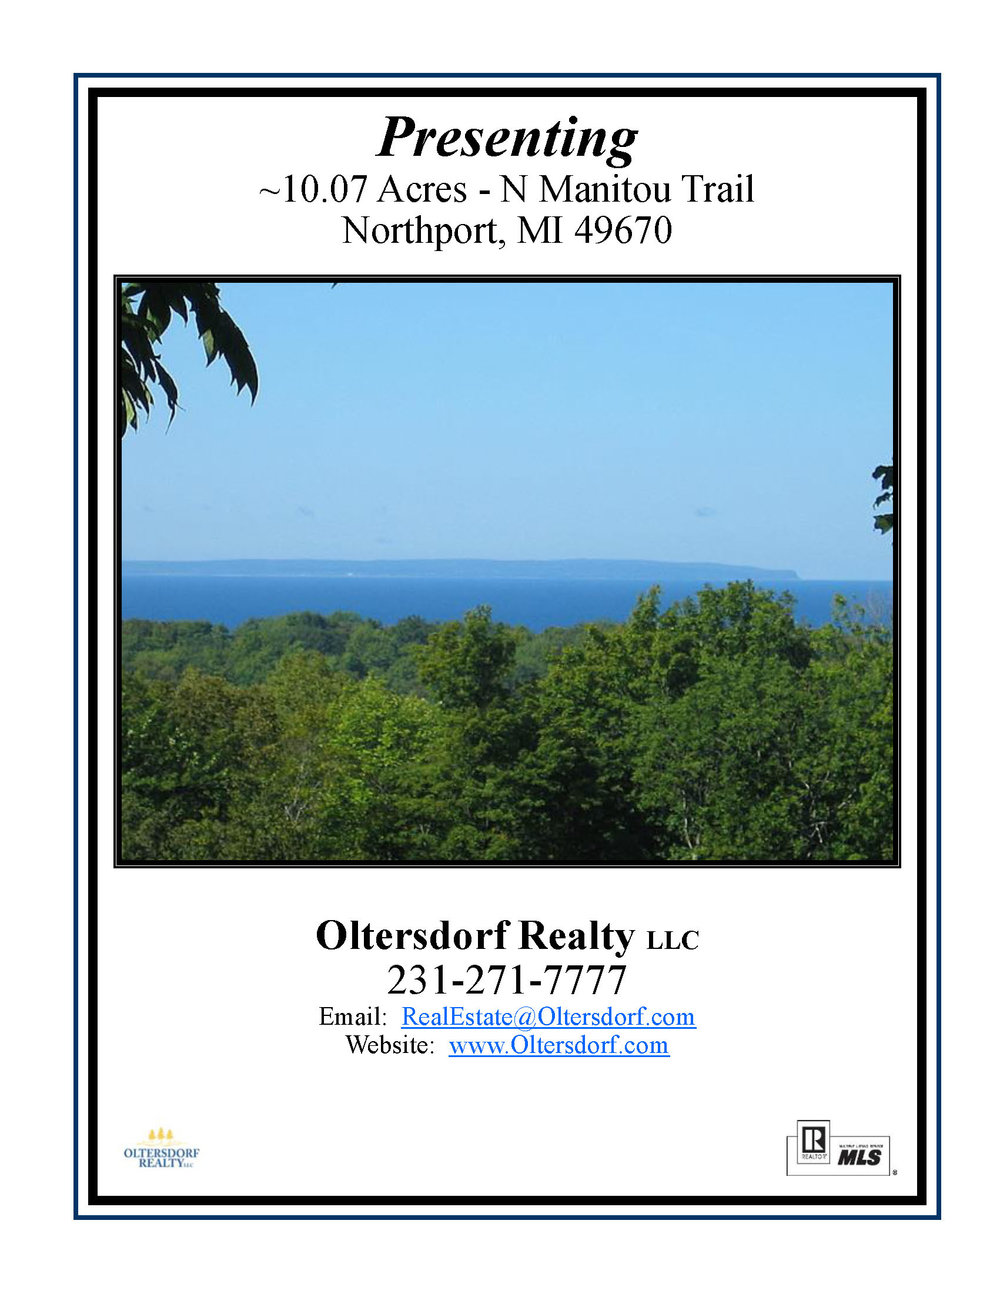 N Manitou Trail, Northport, Leelanau County, Vacant 10.07 Acreage parcel for sale by Oltersdorf Realty LLC (1).jpg